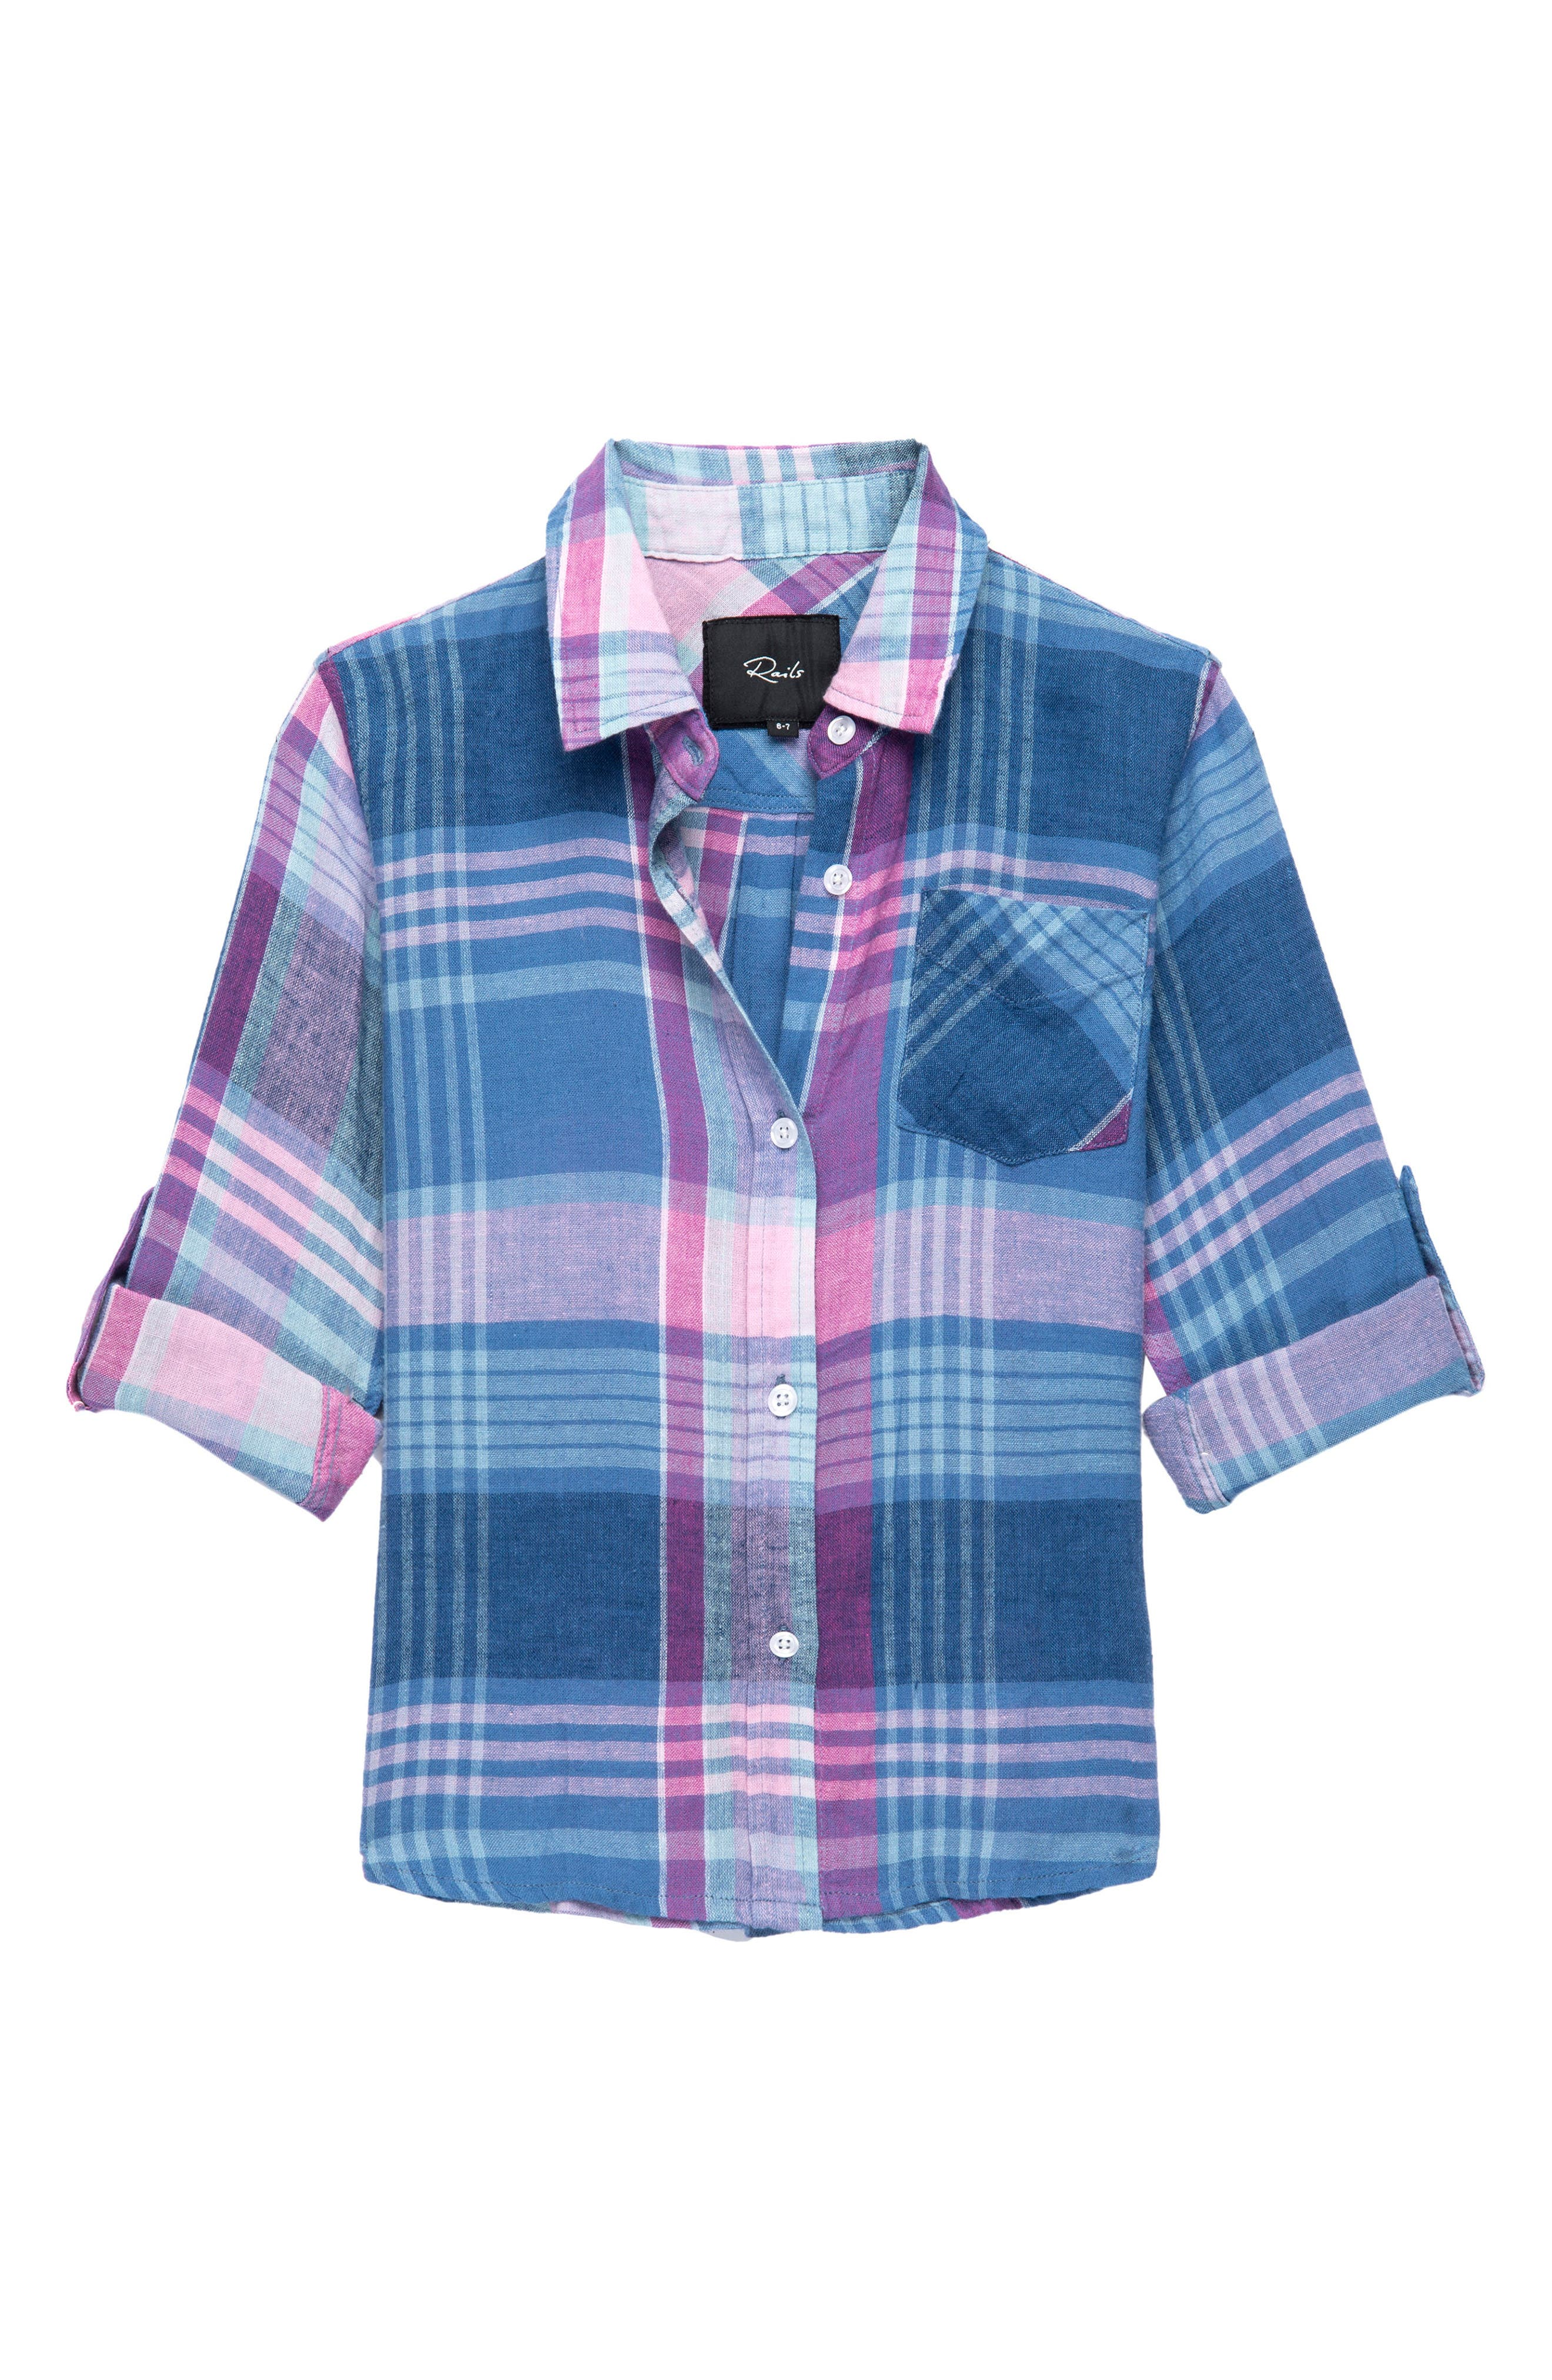 Cora Plaid Shirt,                             Main thumbnail 1, color,                             Laguna Coast Azaela